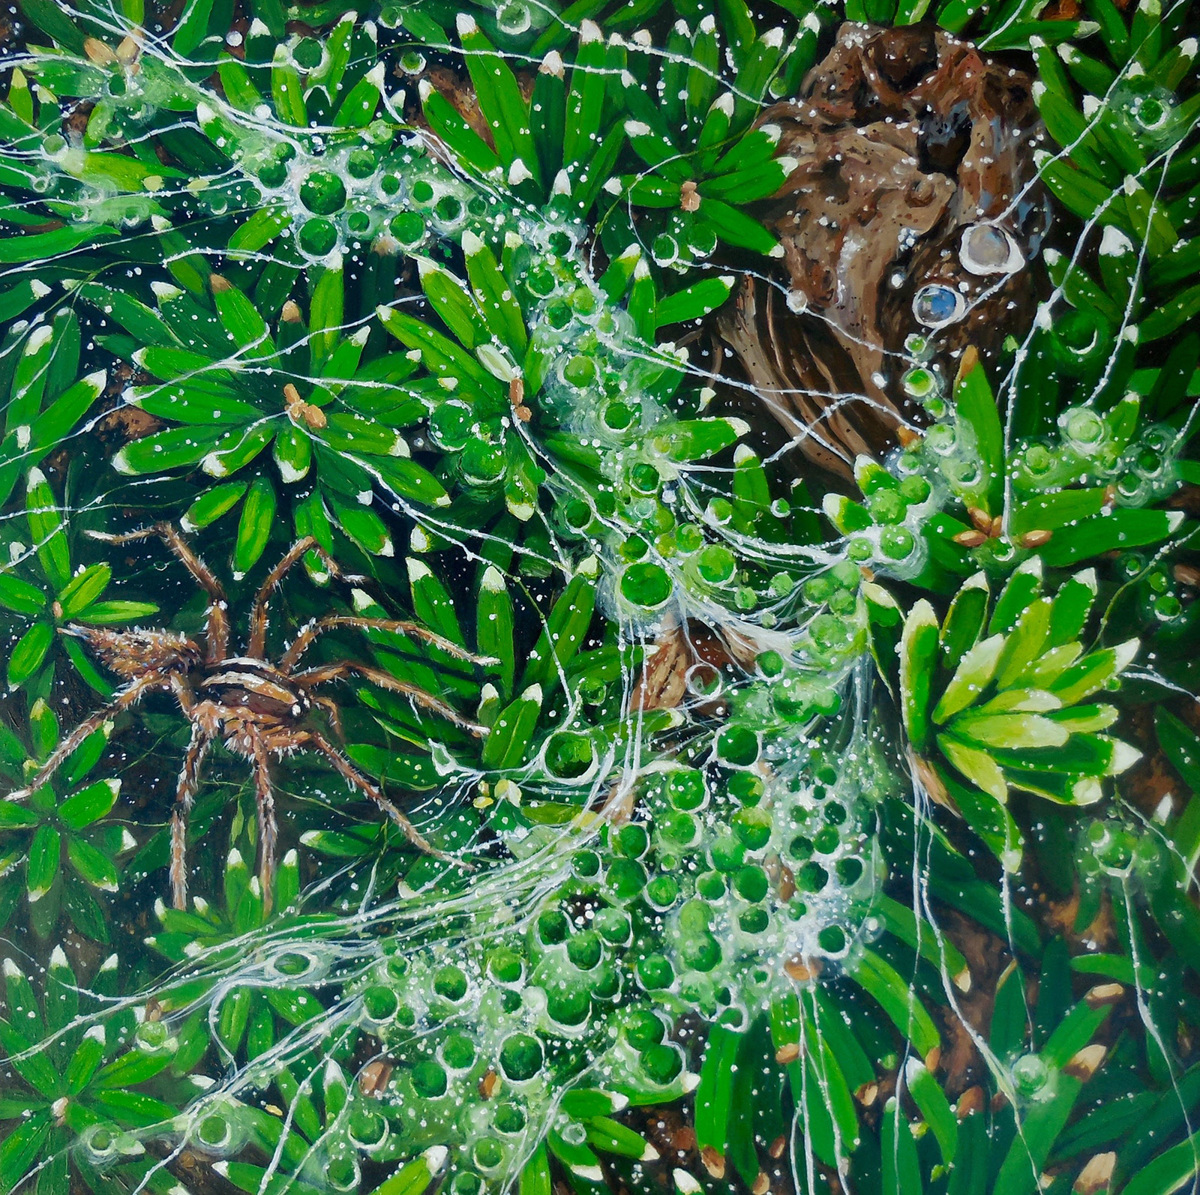 Spider Dew - Acrylic on Wood, 2016 (large view)